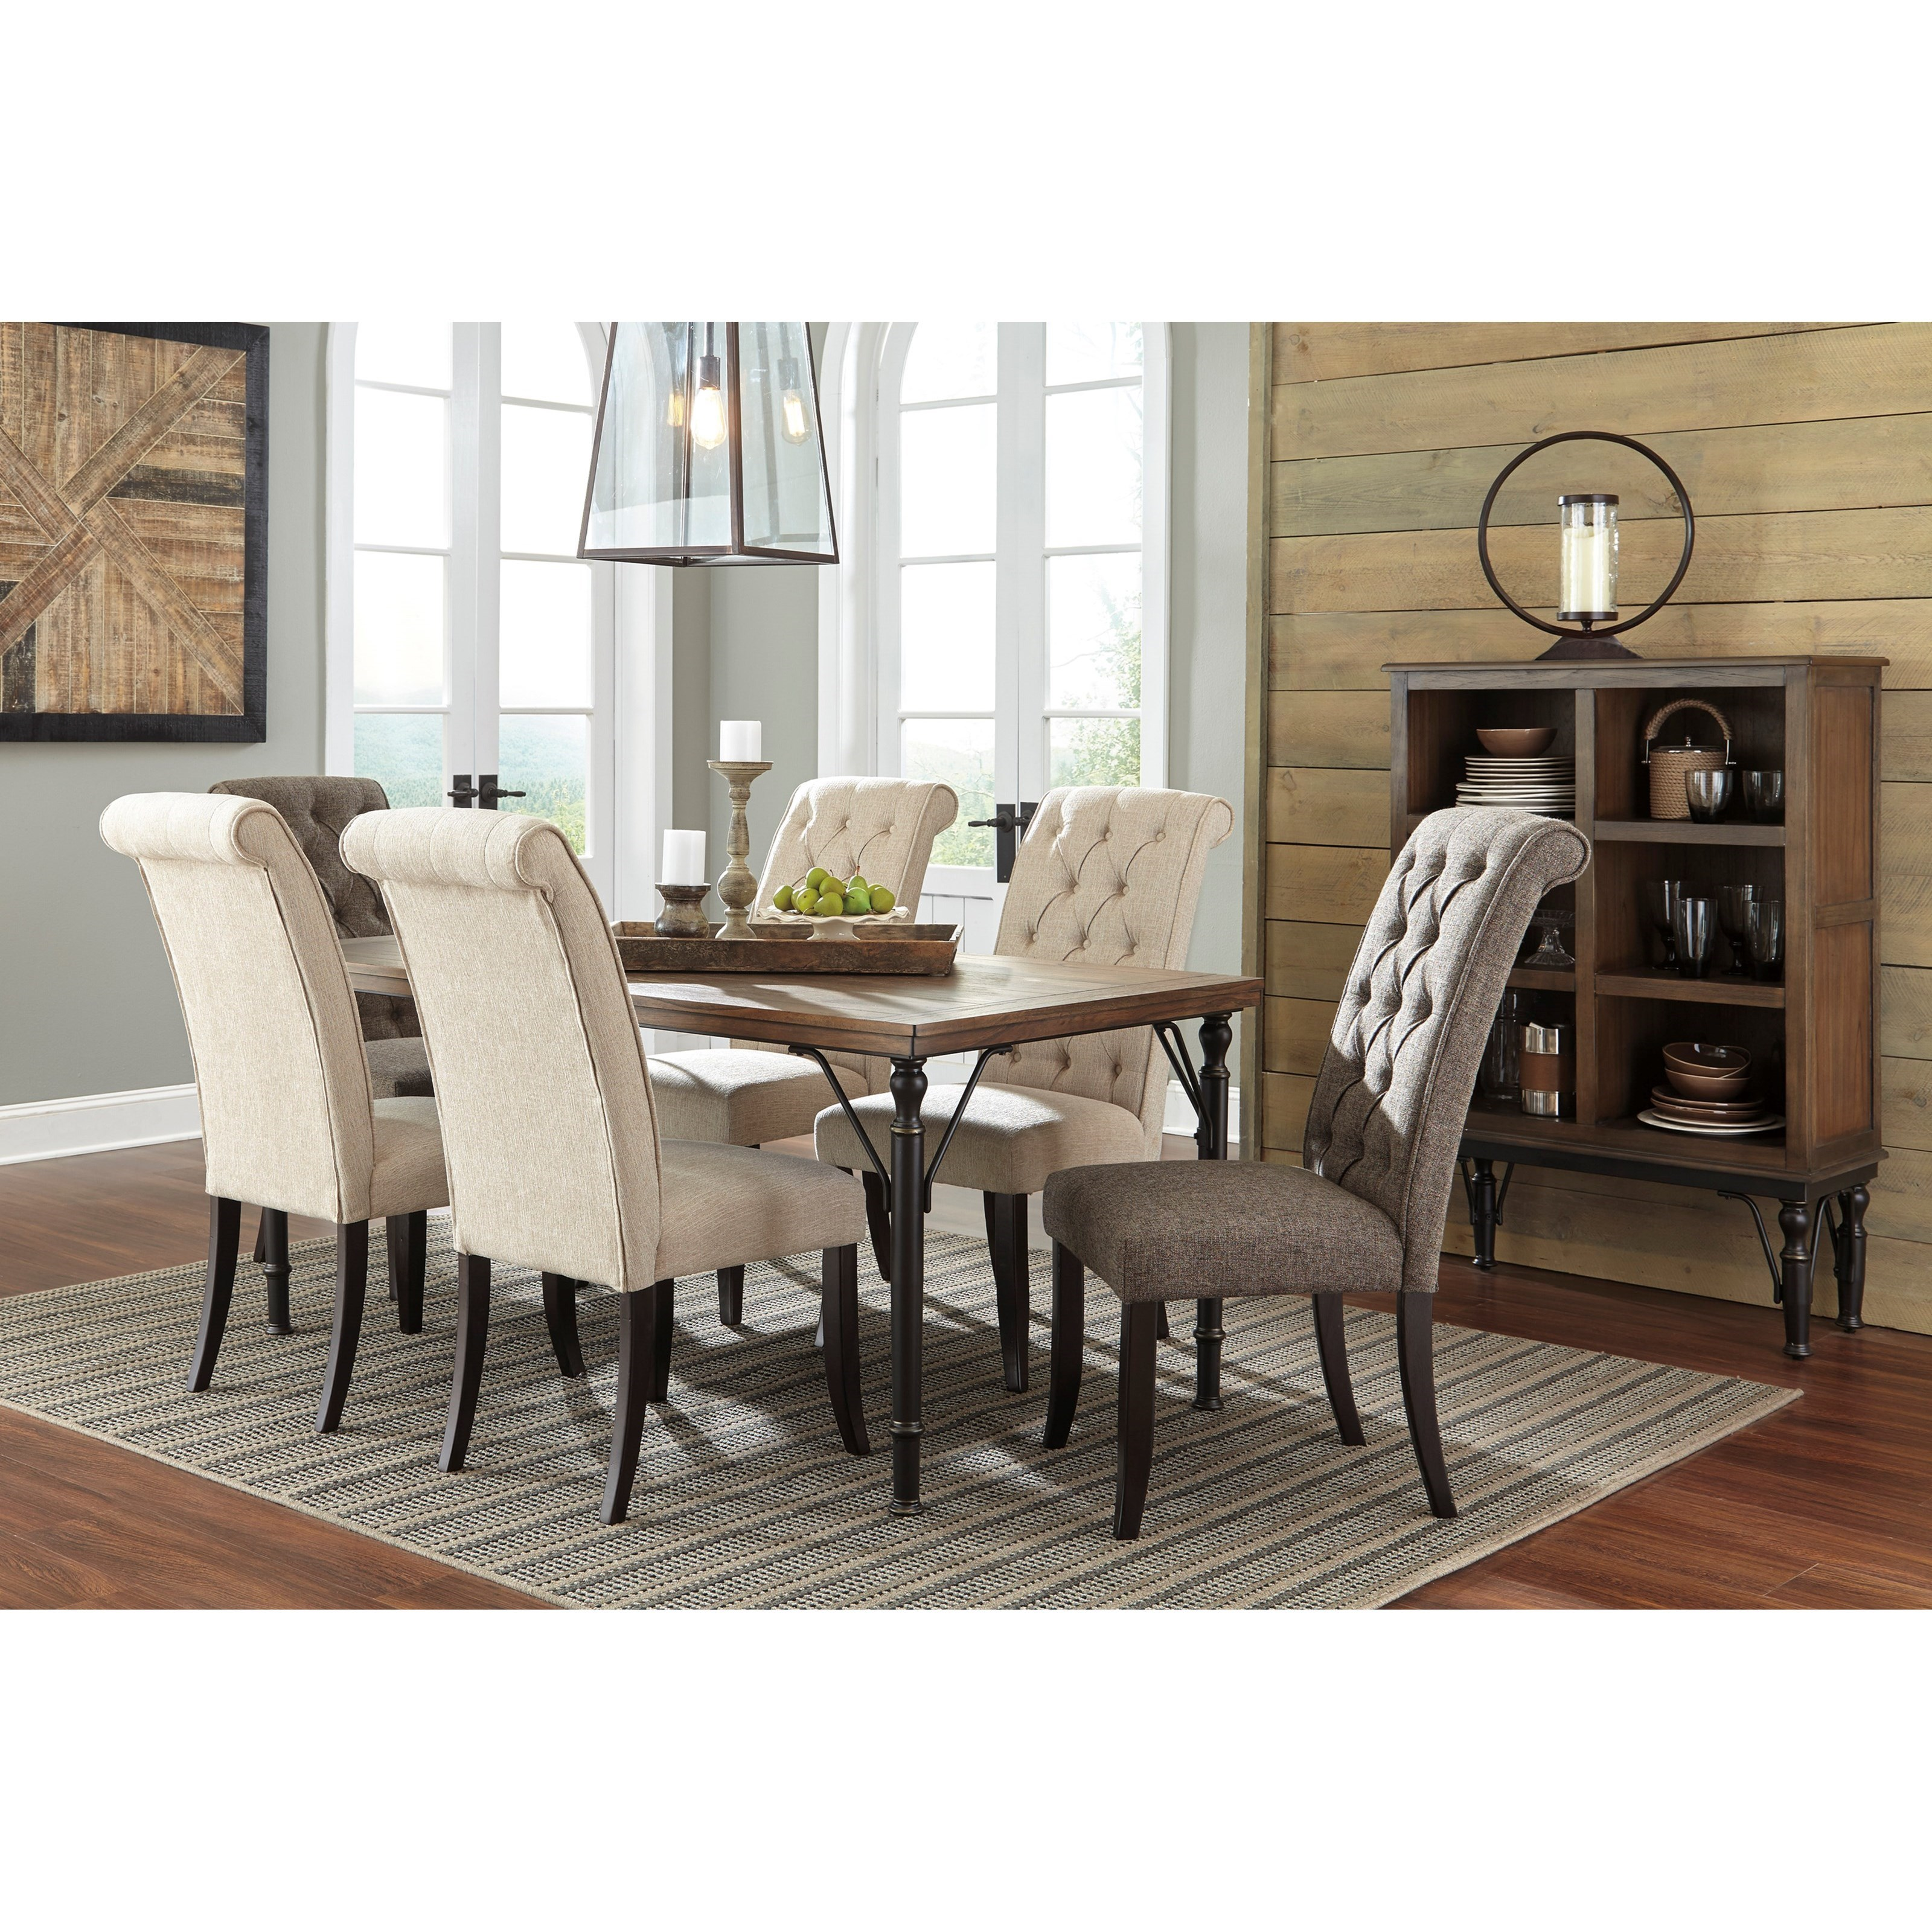 Side Chairs For Dining Room: Dining Upholstered Side Chair With Button Tufting And Roll